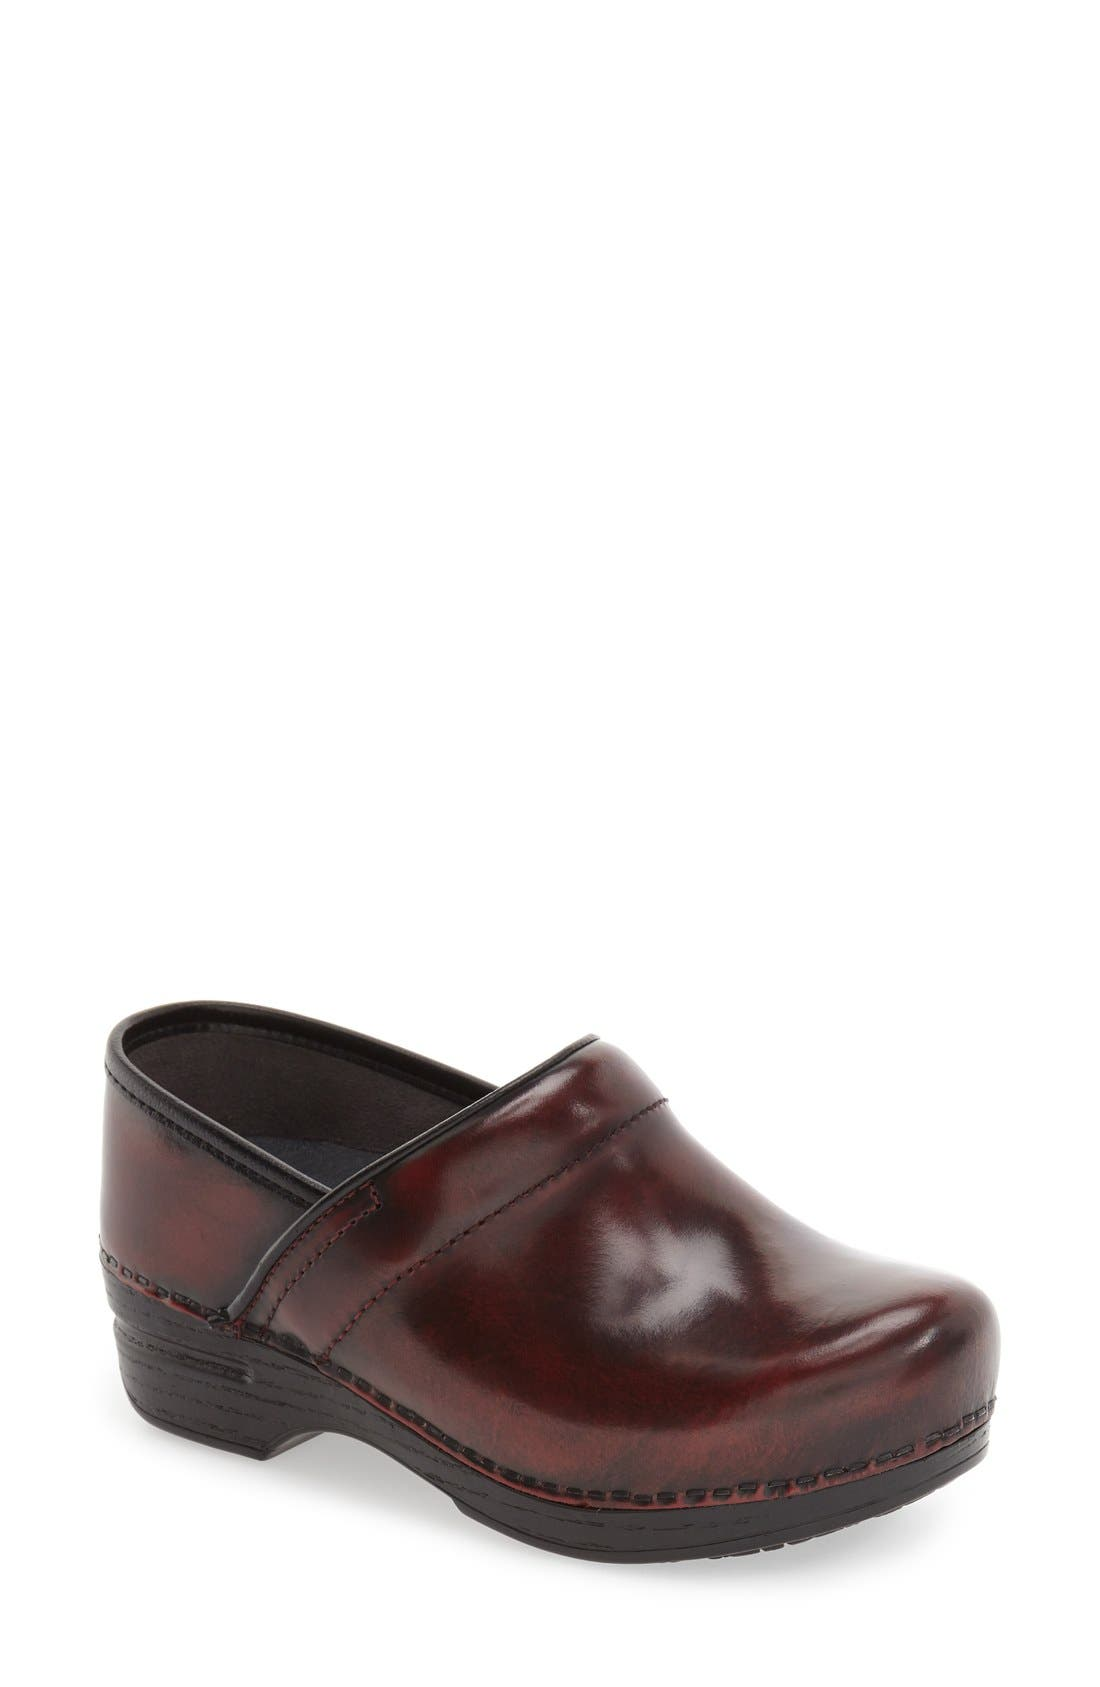 'Pro XP' Patent Leather Clog,                             Main thumbnail 1, color,                             Burgundy Cabrio Patent Leather